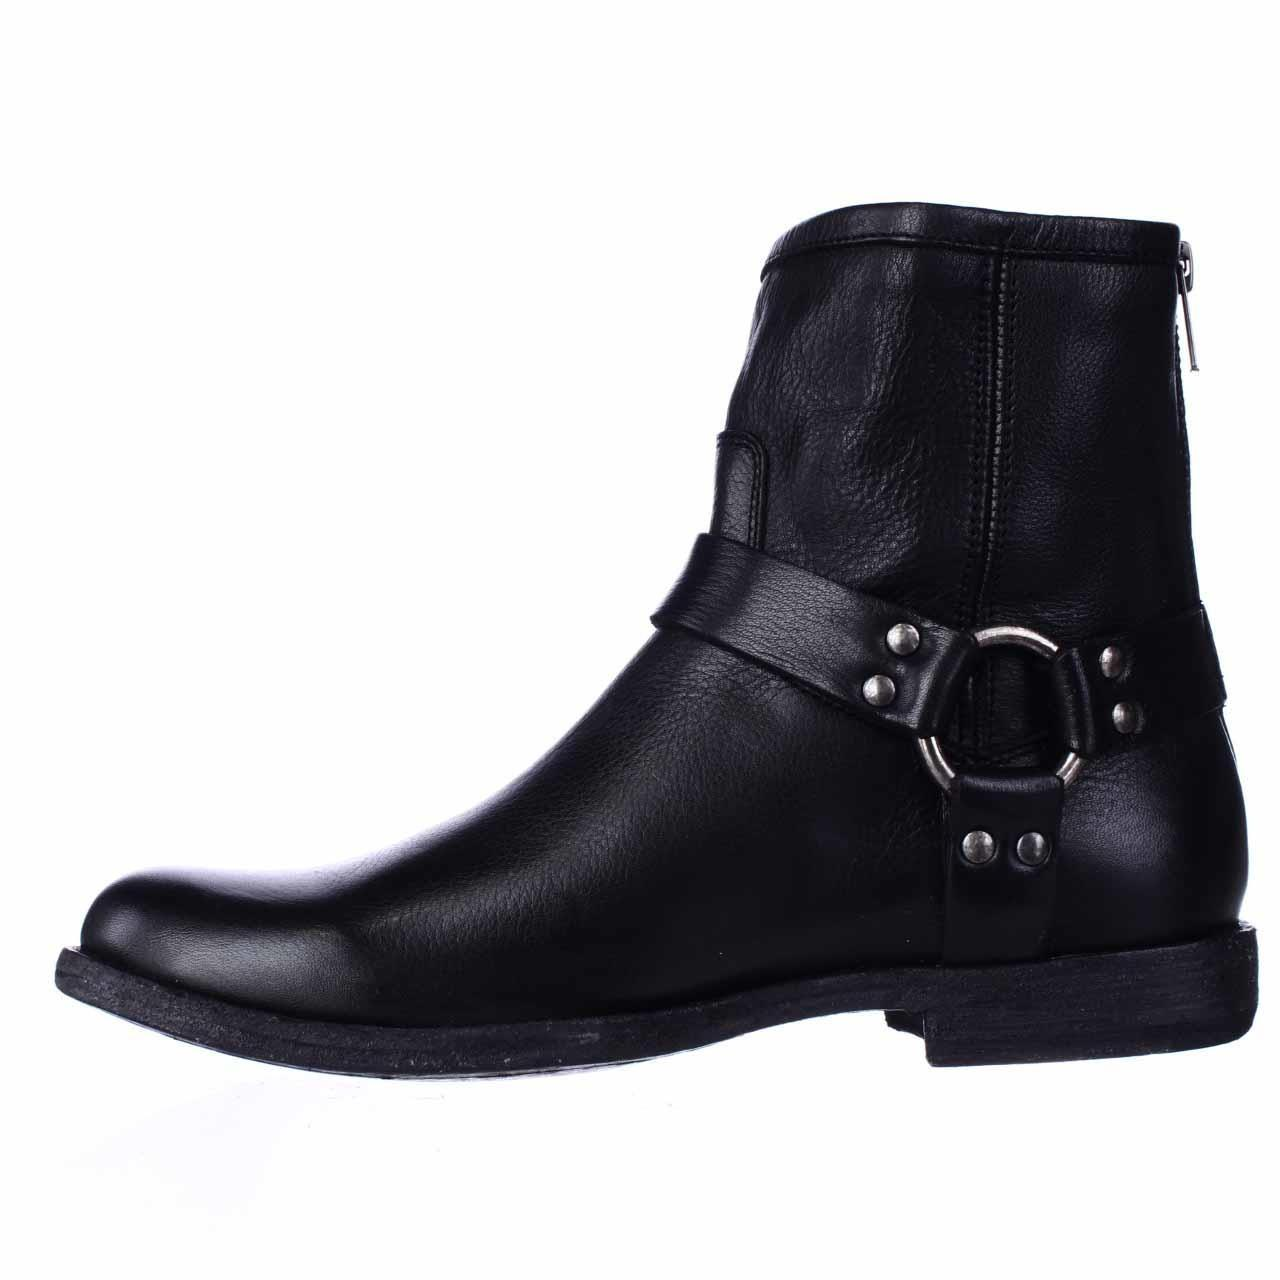 frye phillip harness ankle boots black in black lyst